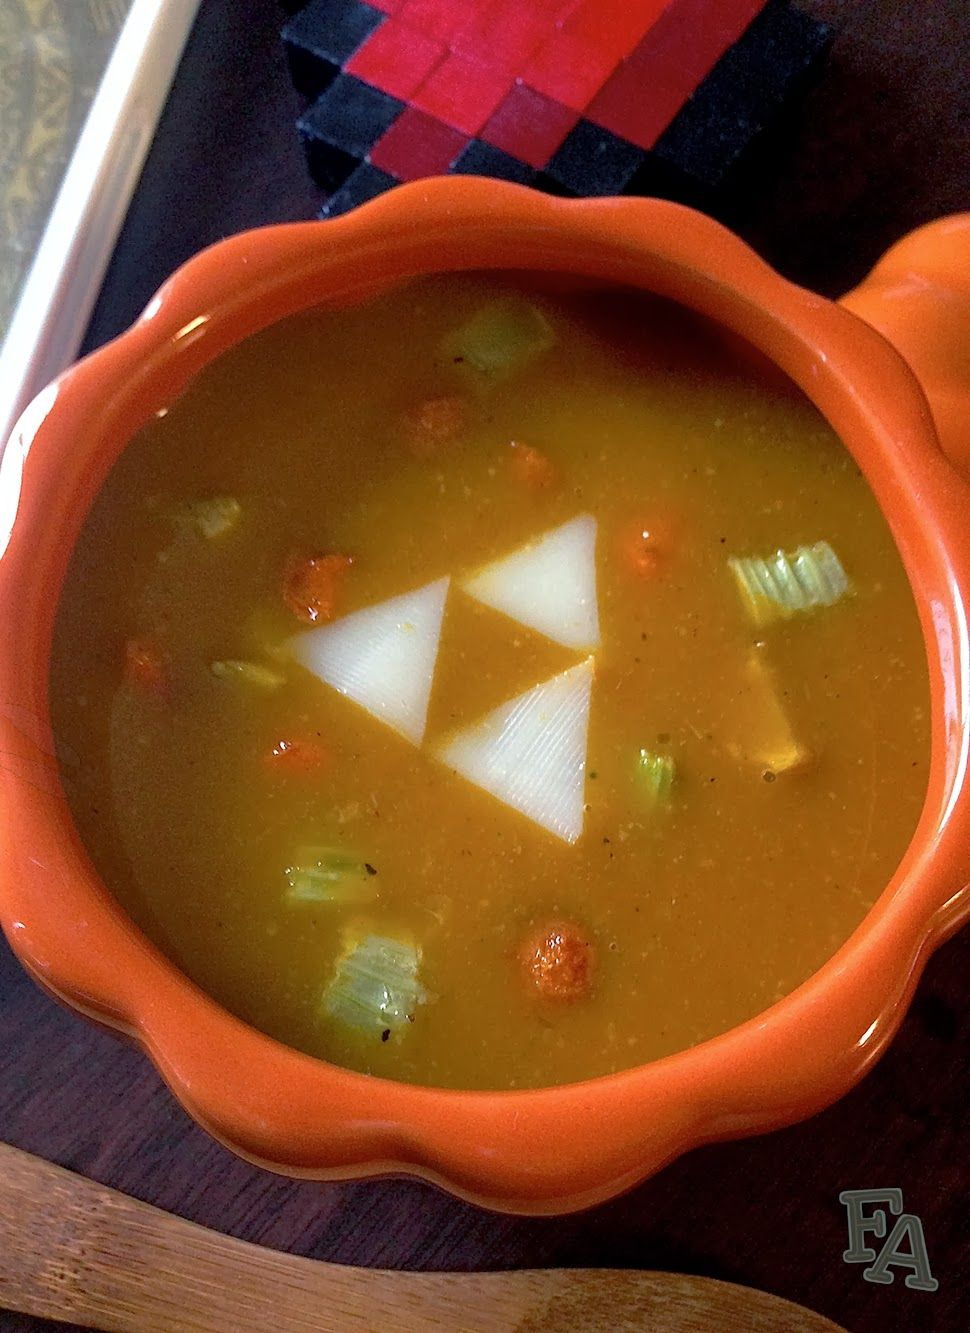 Fiction food caf pumpkin soup from the legend of zelda skyward food adventures in fiction pumpkin soup from the legend of zelda skyward sword the recipe looks easy minus the zelda cheese forumfinder Image collections